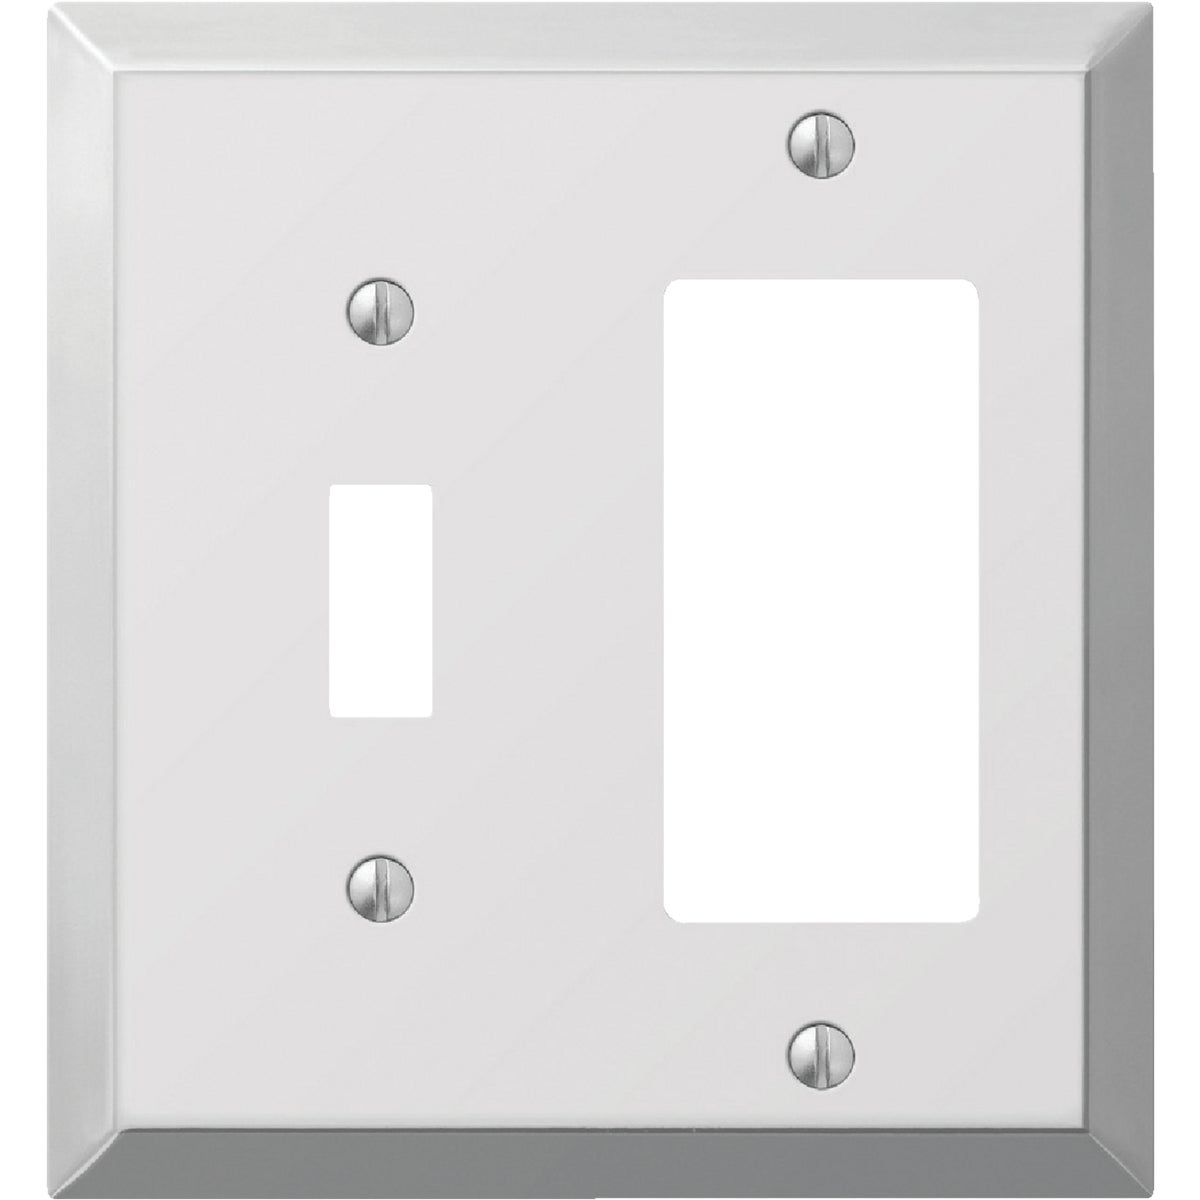 1TGL/1RCKR PC WALLPLATE - 9CS126 by Jackson Deerfield Mf